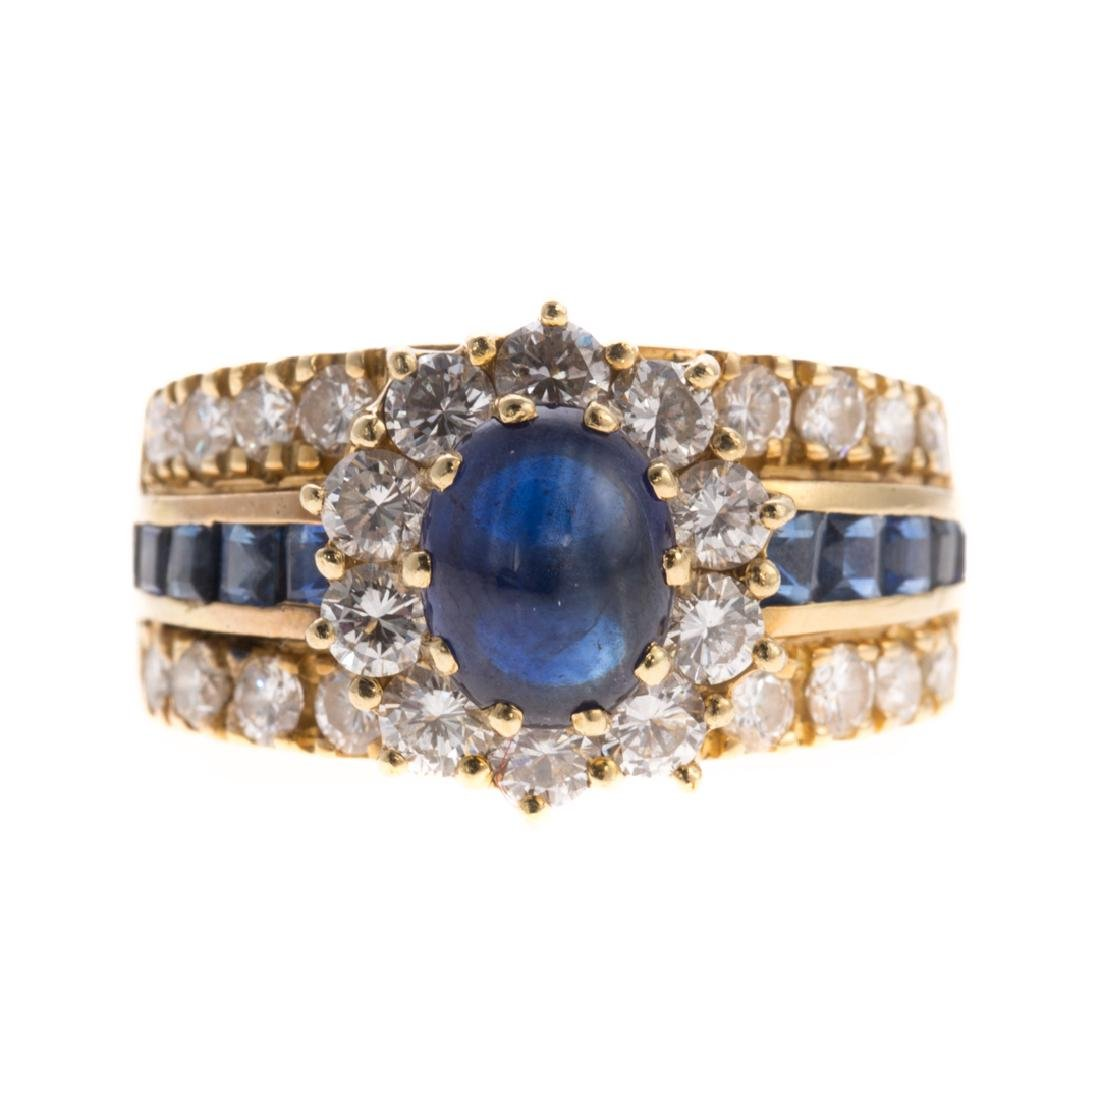 A Lady's Sapphire & Diamond Ring in 14K Gold